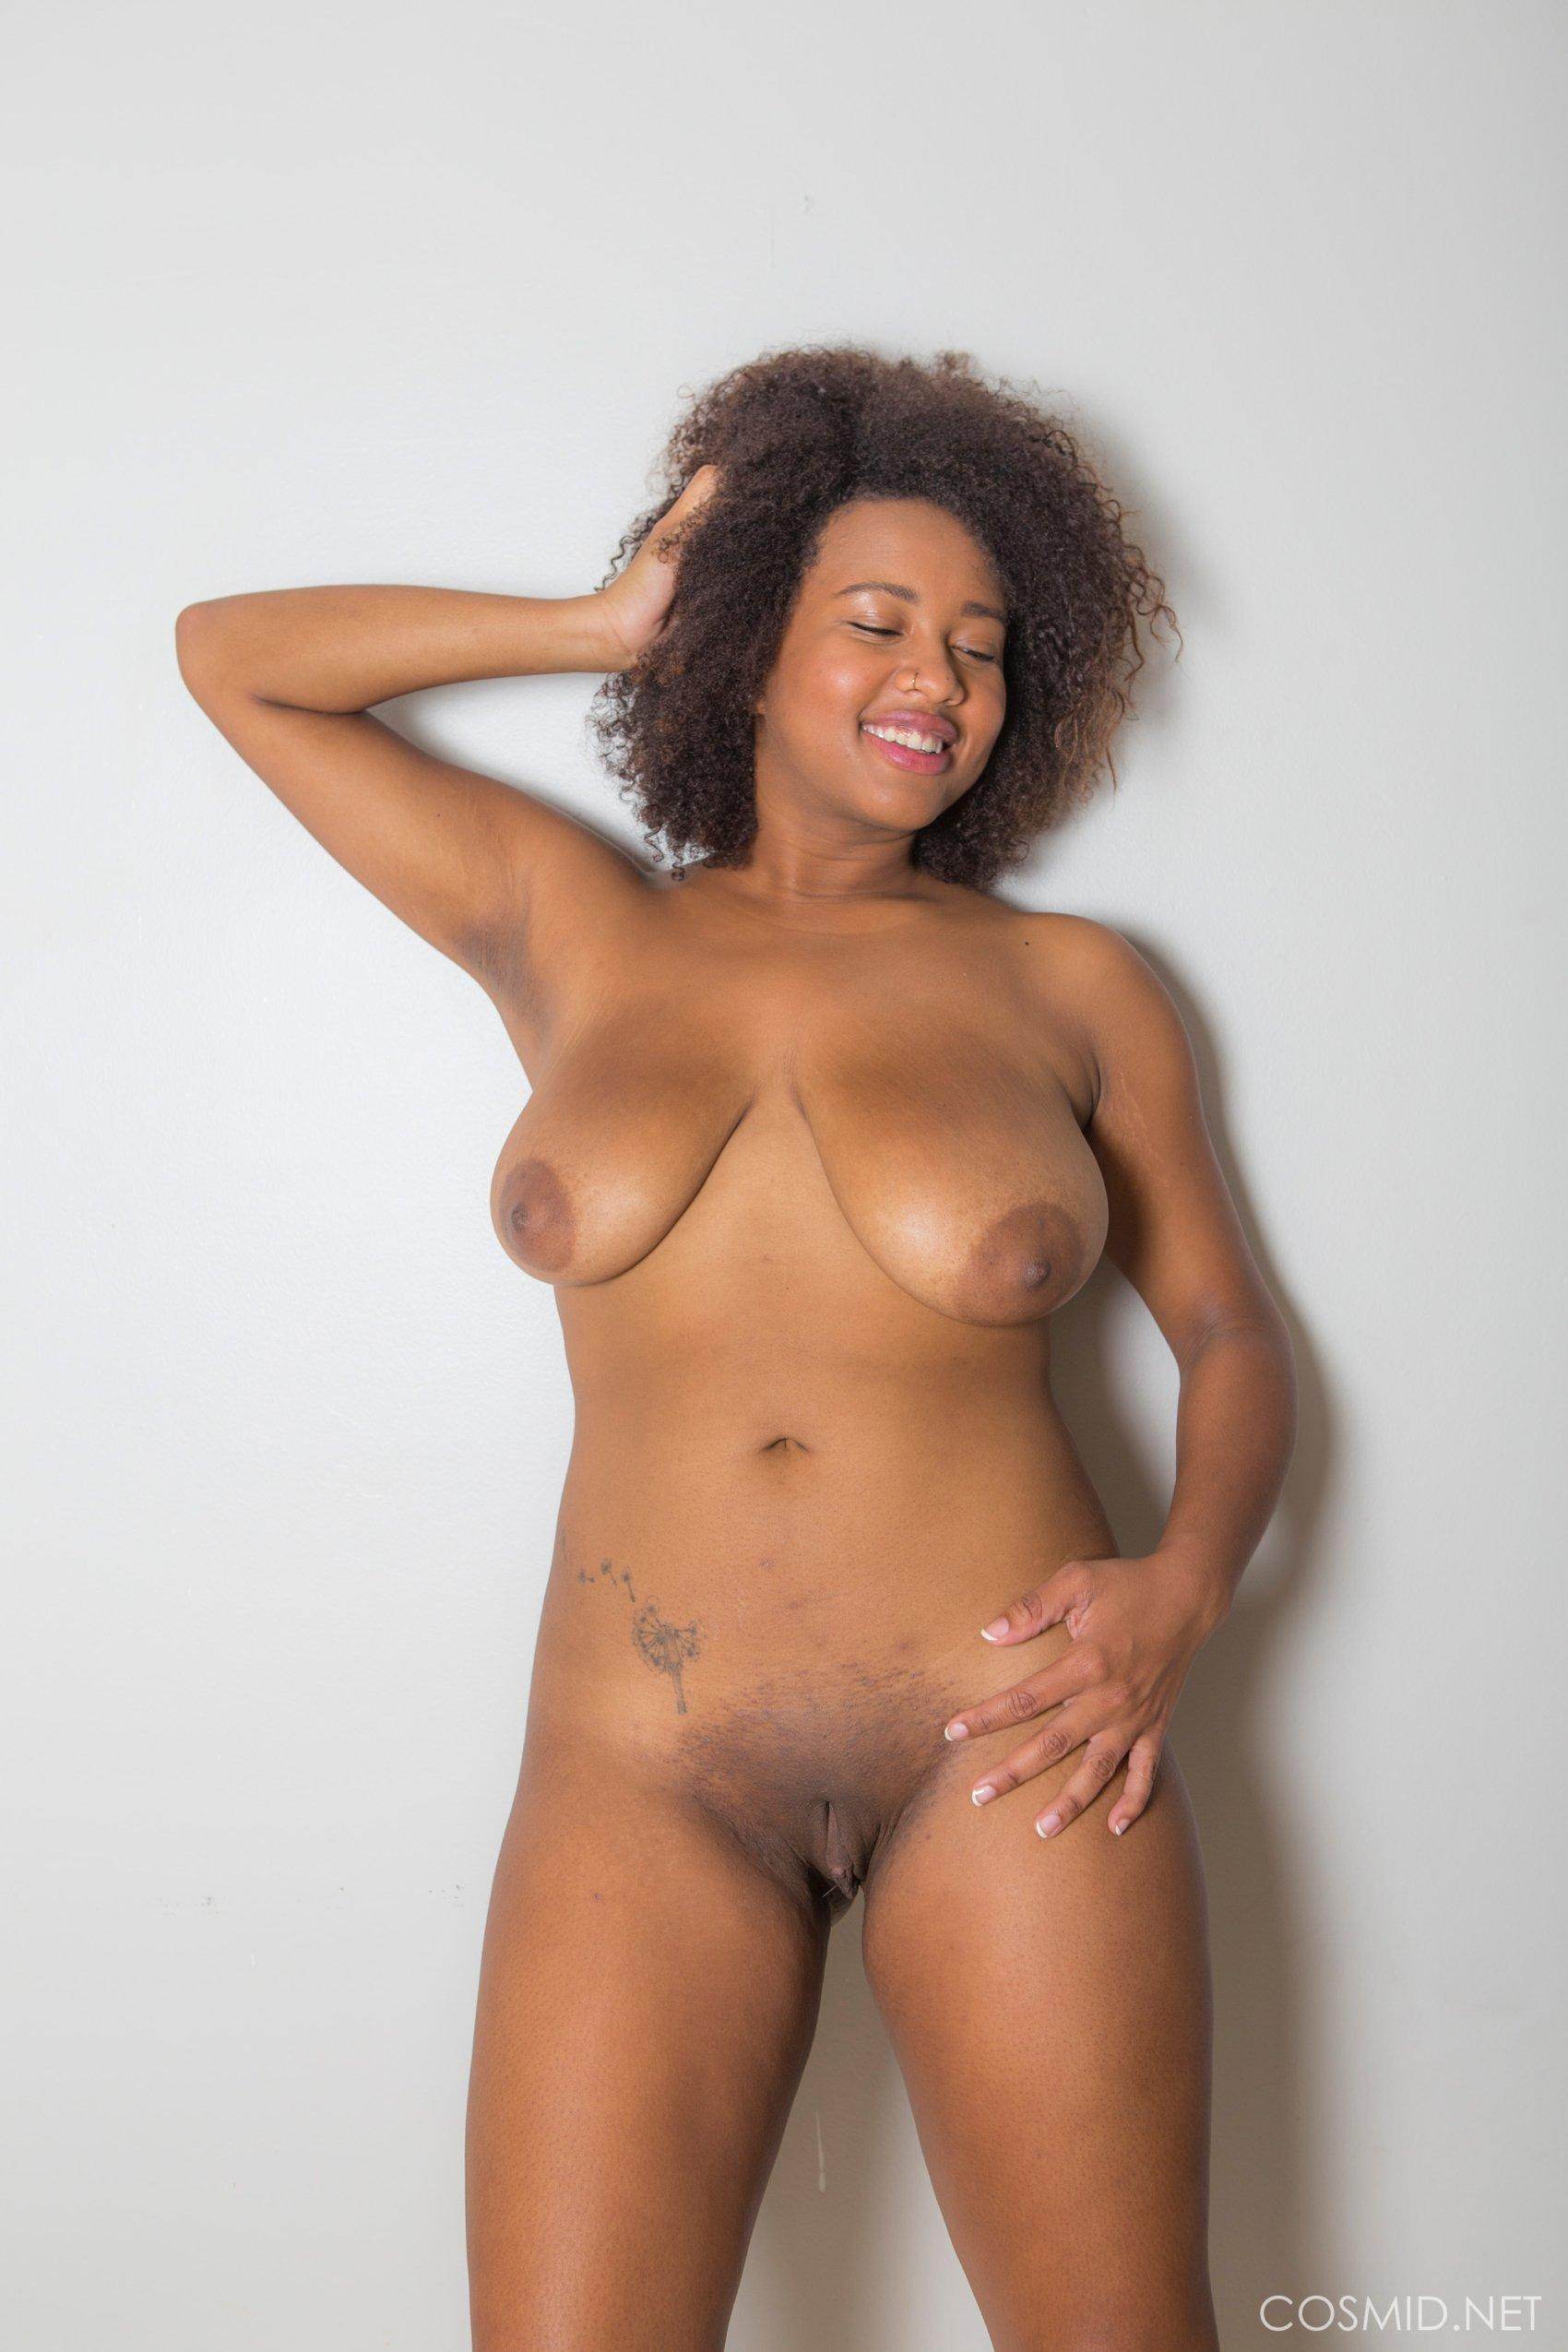 Genelle williams pussy pictures — photo 14